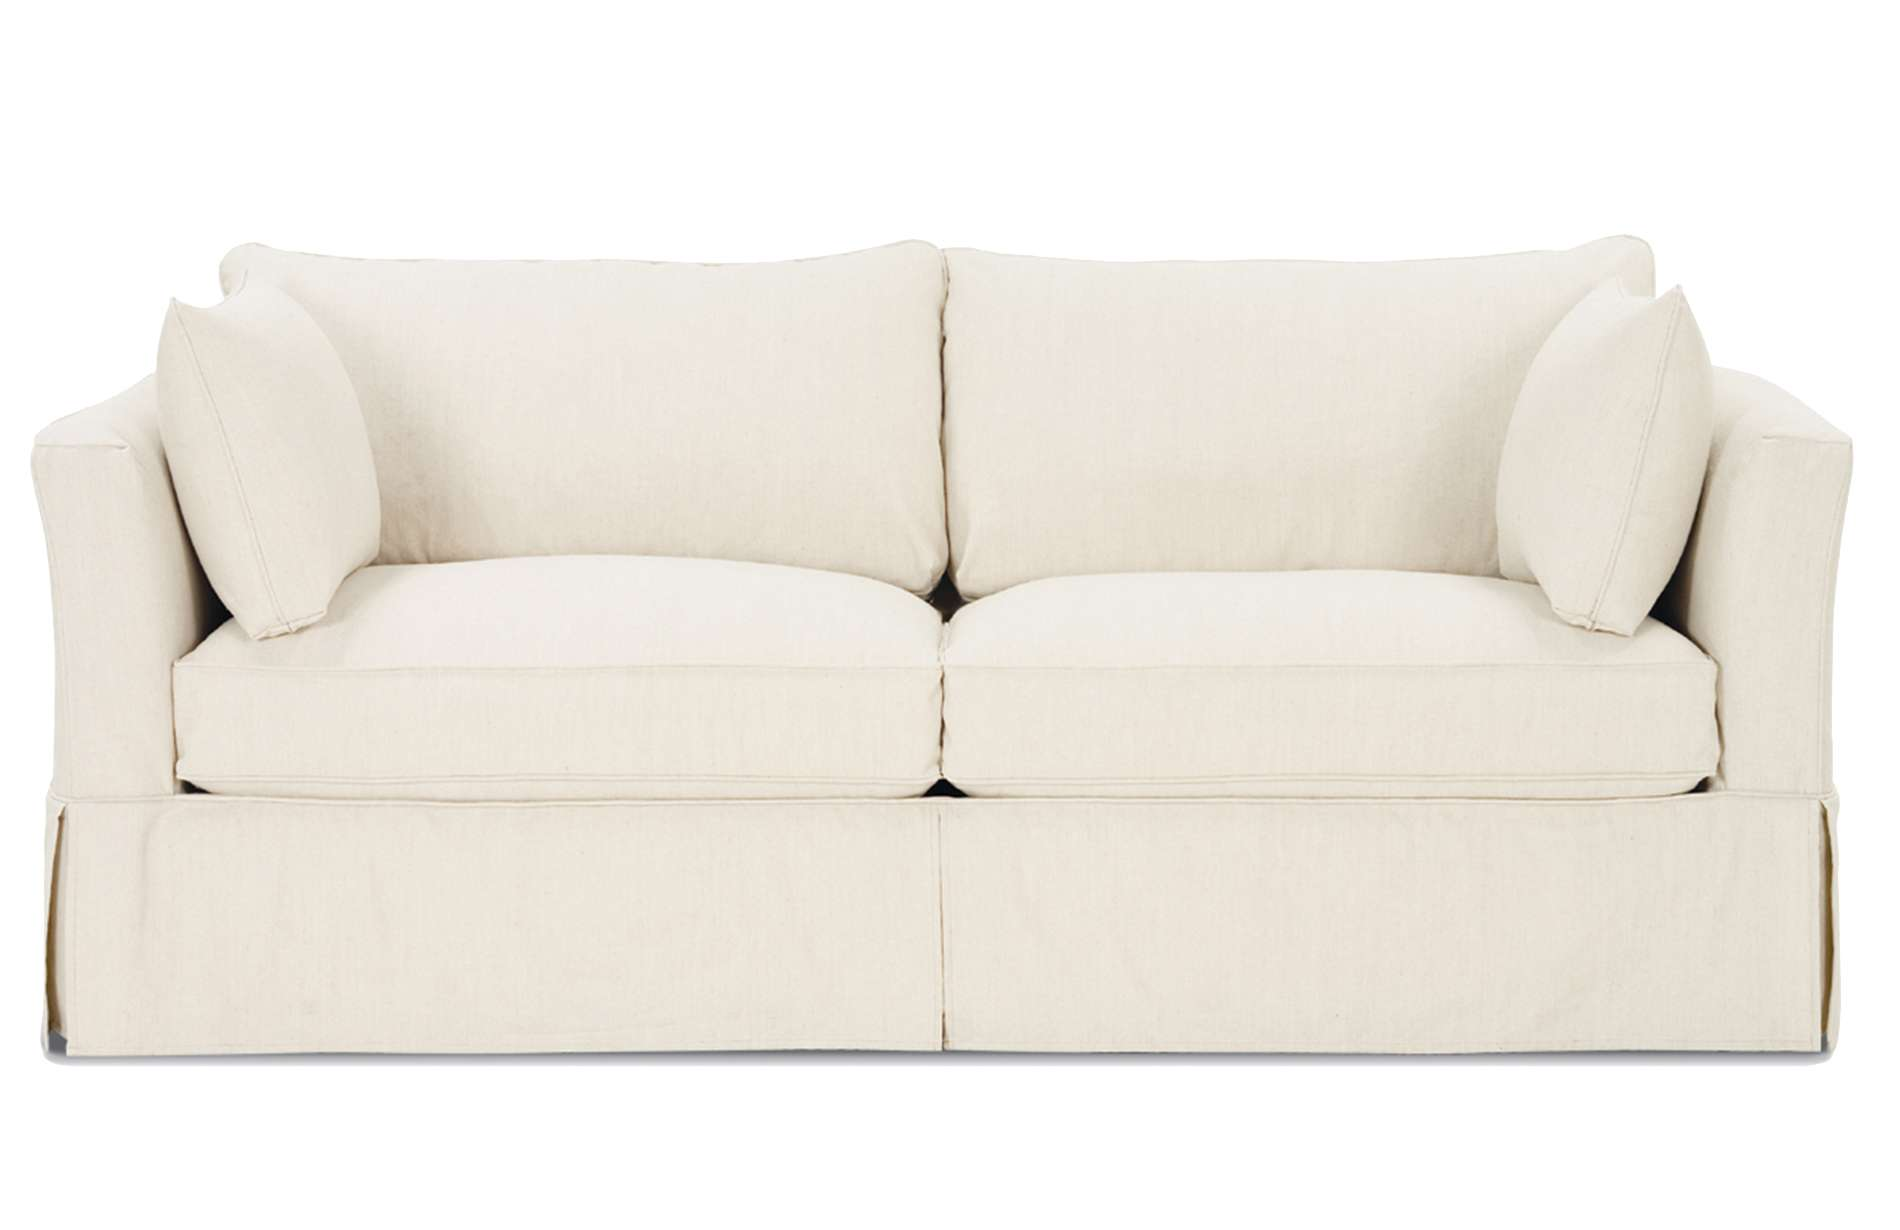 Dalton Slipcover Sofa | Rowe Furniture | Rowe Furniture